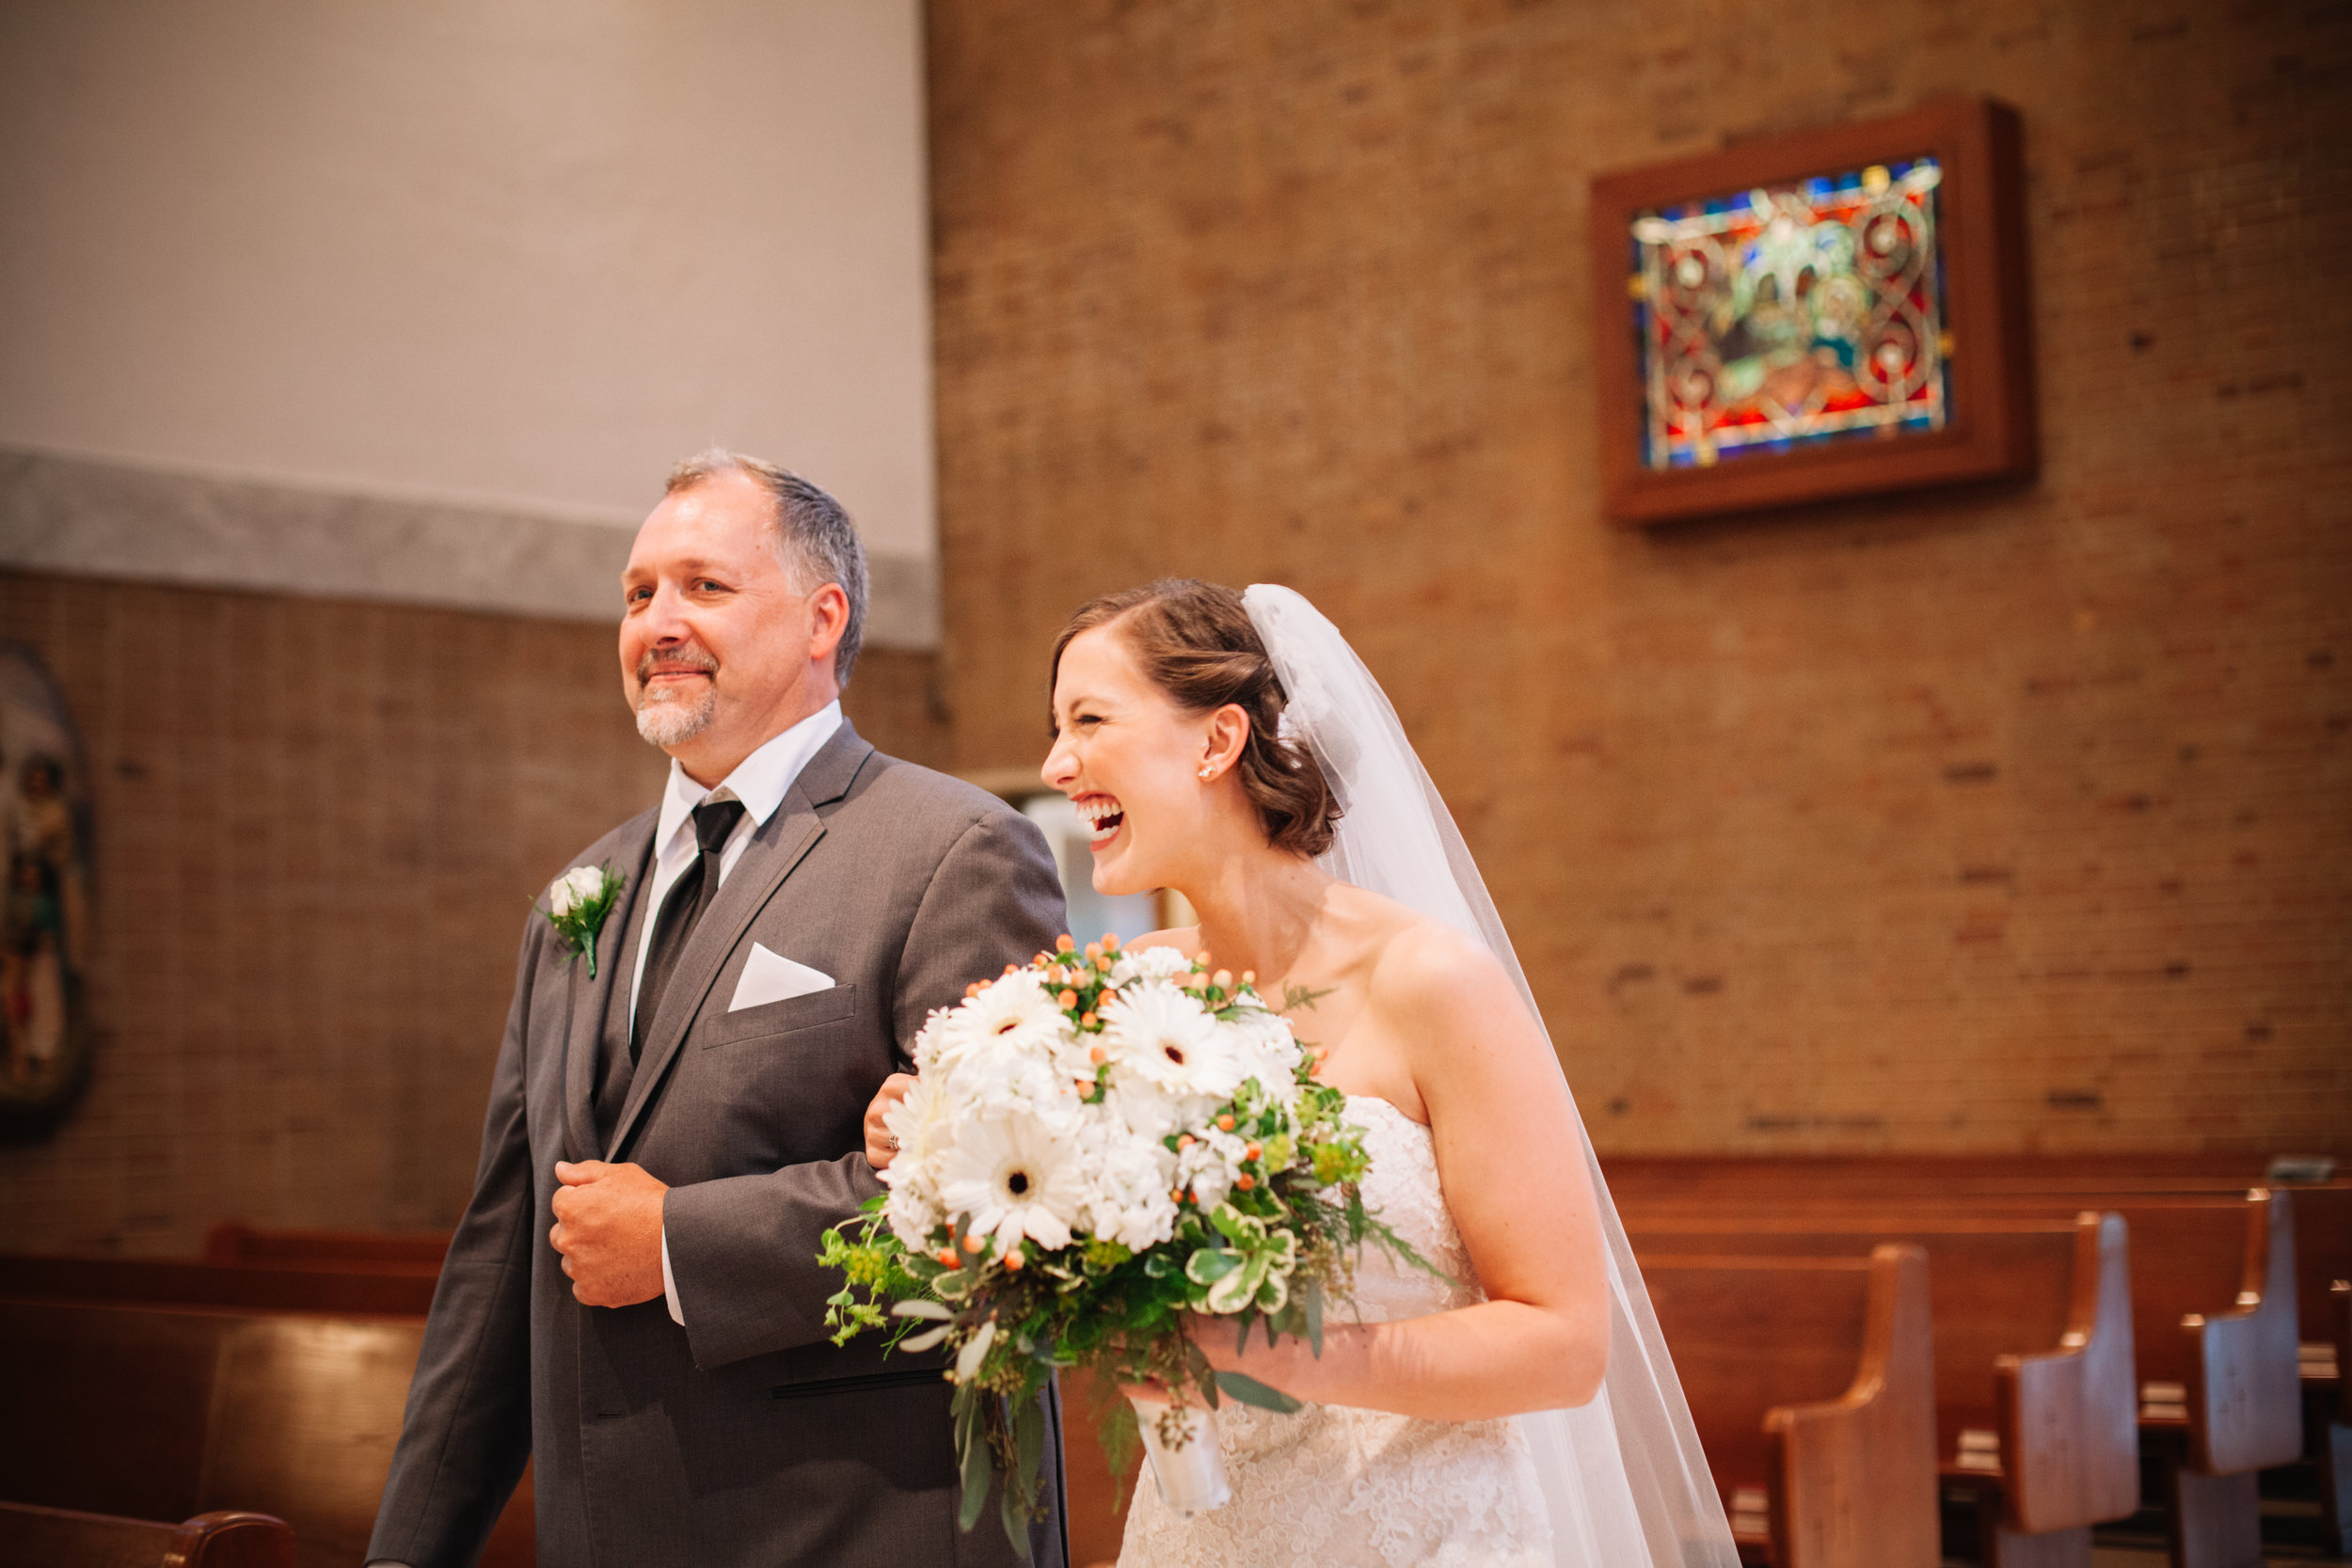 06.16 - Lauren + Scott - ceremony - color -208.jpg